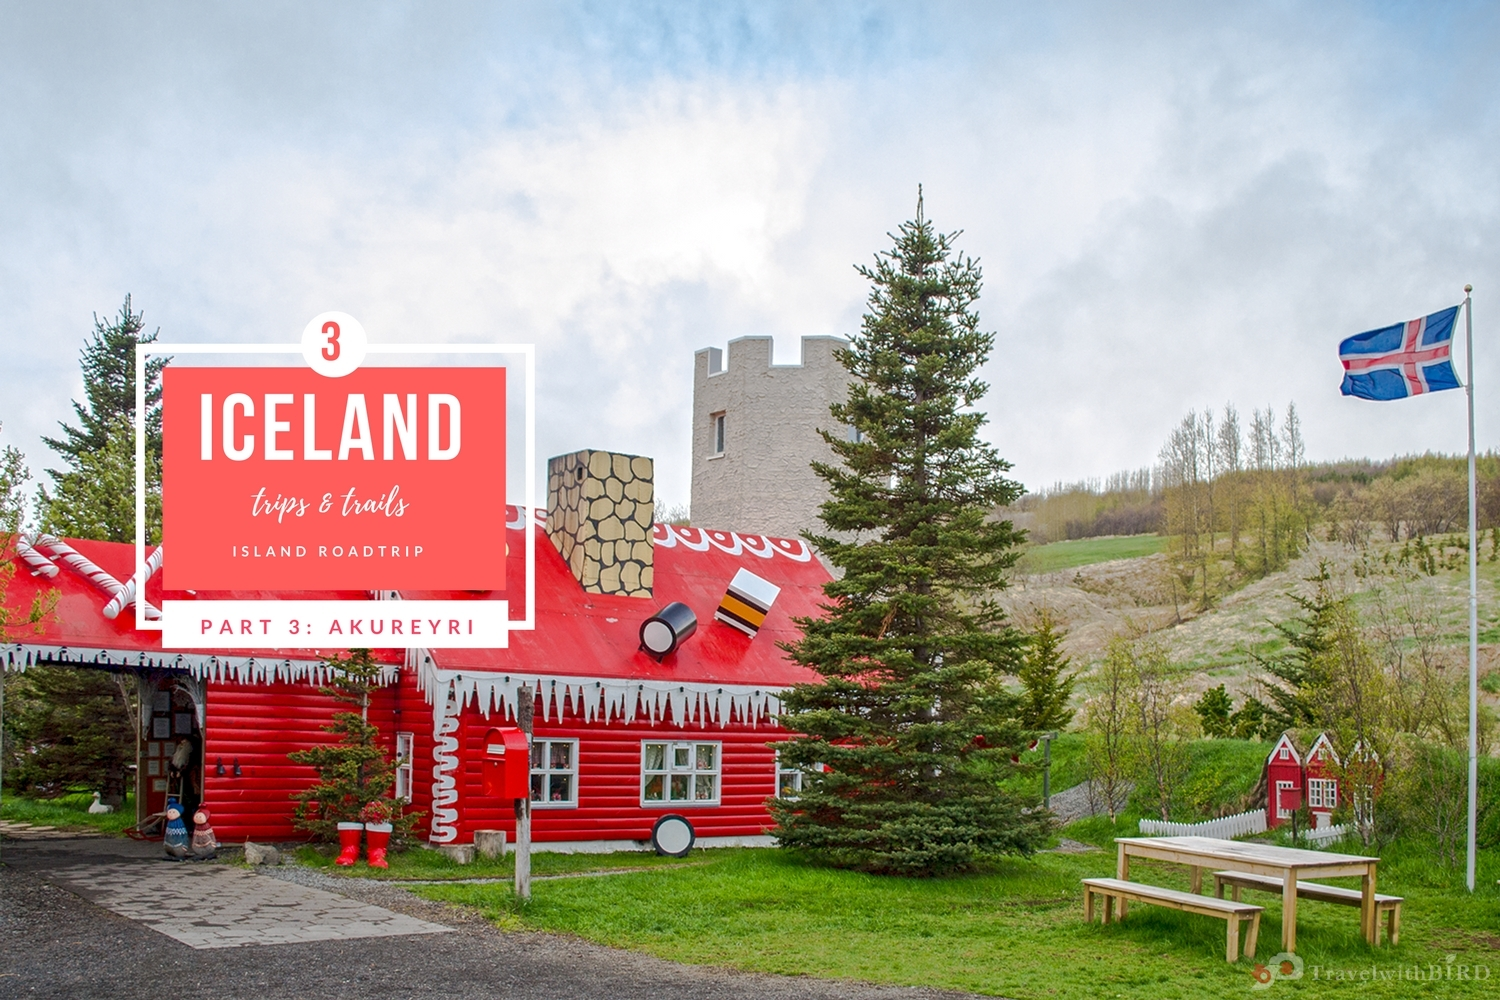 Akureyri holidays – Iceland Roadtrip in 7 days